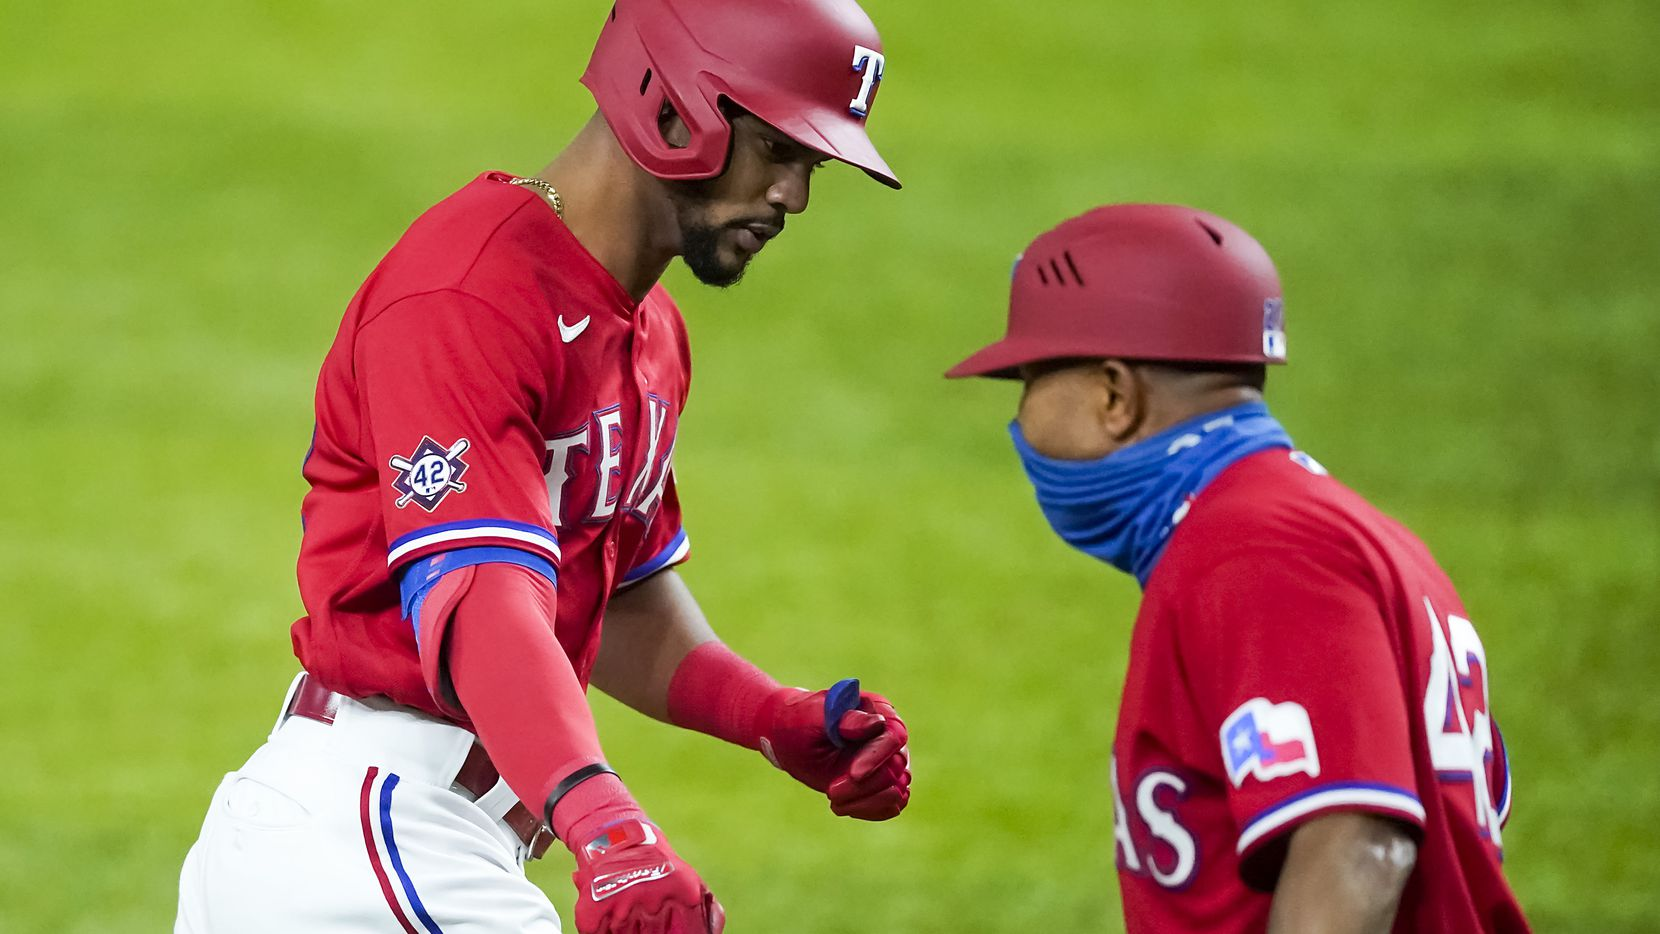 Texas Rangers center fielder Leody Taveras gets a hand from third base coach Tony Beasley as he rounds the bases after hitting solo home run during the third inning against the Los Angeles Dodgers at Globe Life Field on Saturday, Aug. 29, 2020.